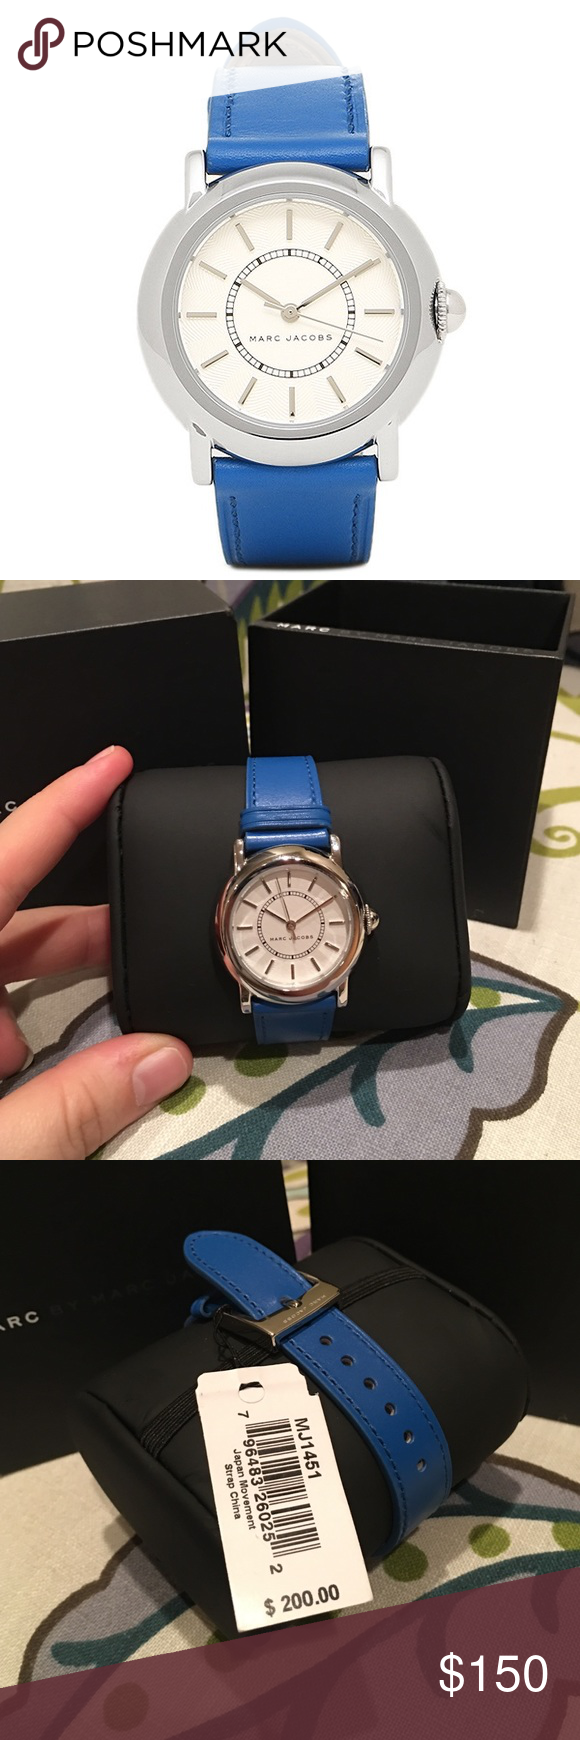 Marc Jacobs 'Courtney' Watch Blue Leather Strap Great and stylish watch! Cobalt blue strap. Come in a MBMJ box. Stainless steel. Case size: 34mm. Water resistant at 50 meters. Offers welcome through offer tab. No trades. 10110171391 Marc Jacobs Accessories Watches